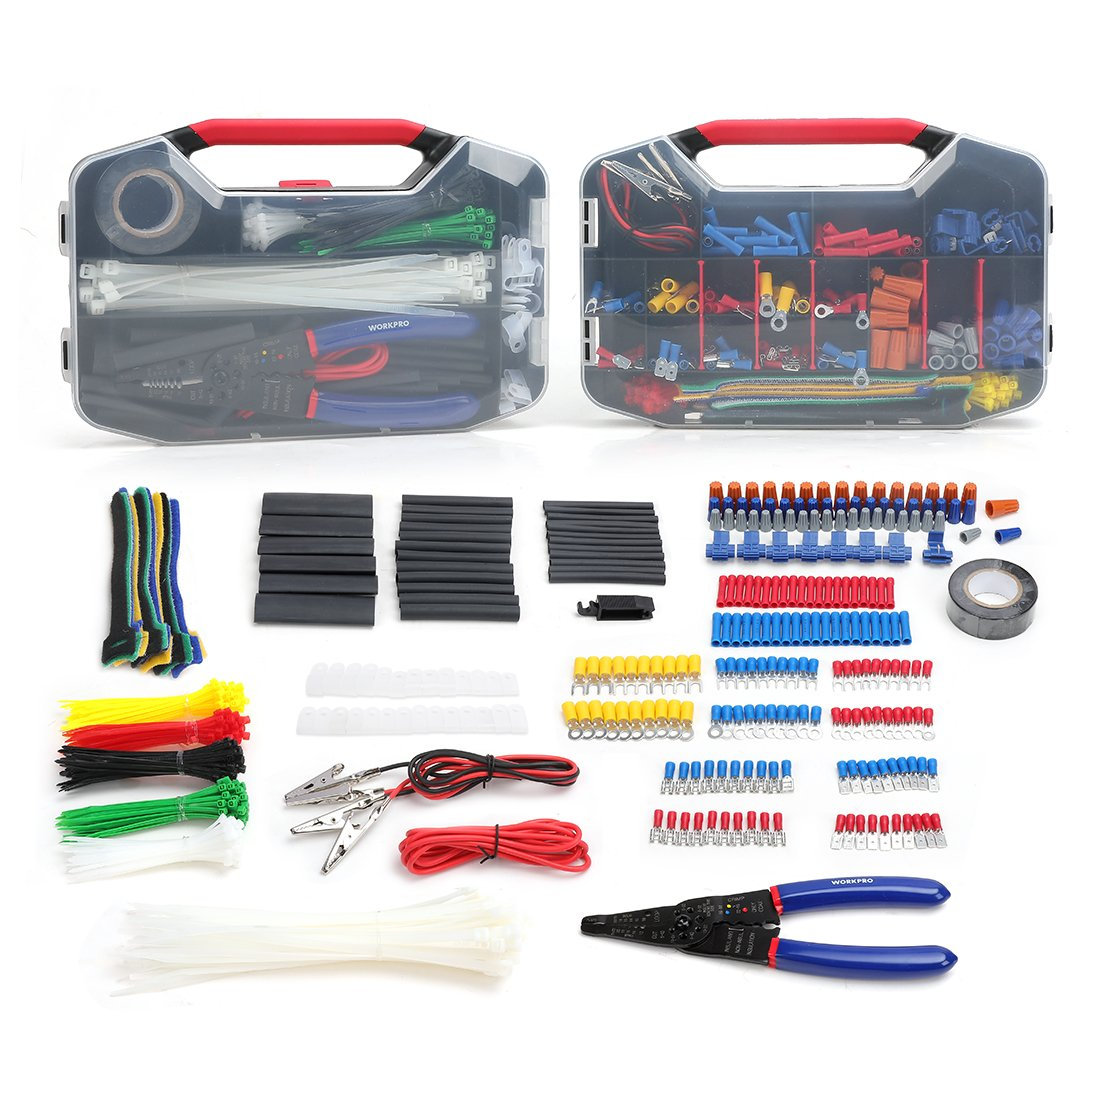 WORKPRO 582-piece Crimp Terminals, Wire Connectors, Heat Shrink Tube, Electrical Repair Kit with Wire Cutter Stripper by WORKPRO